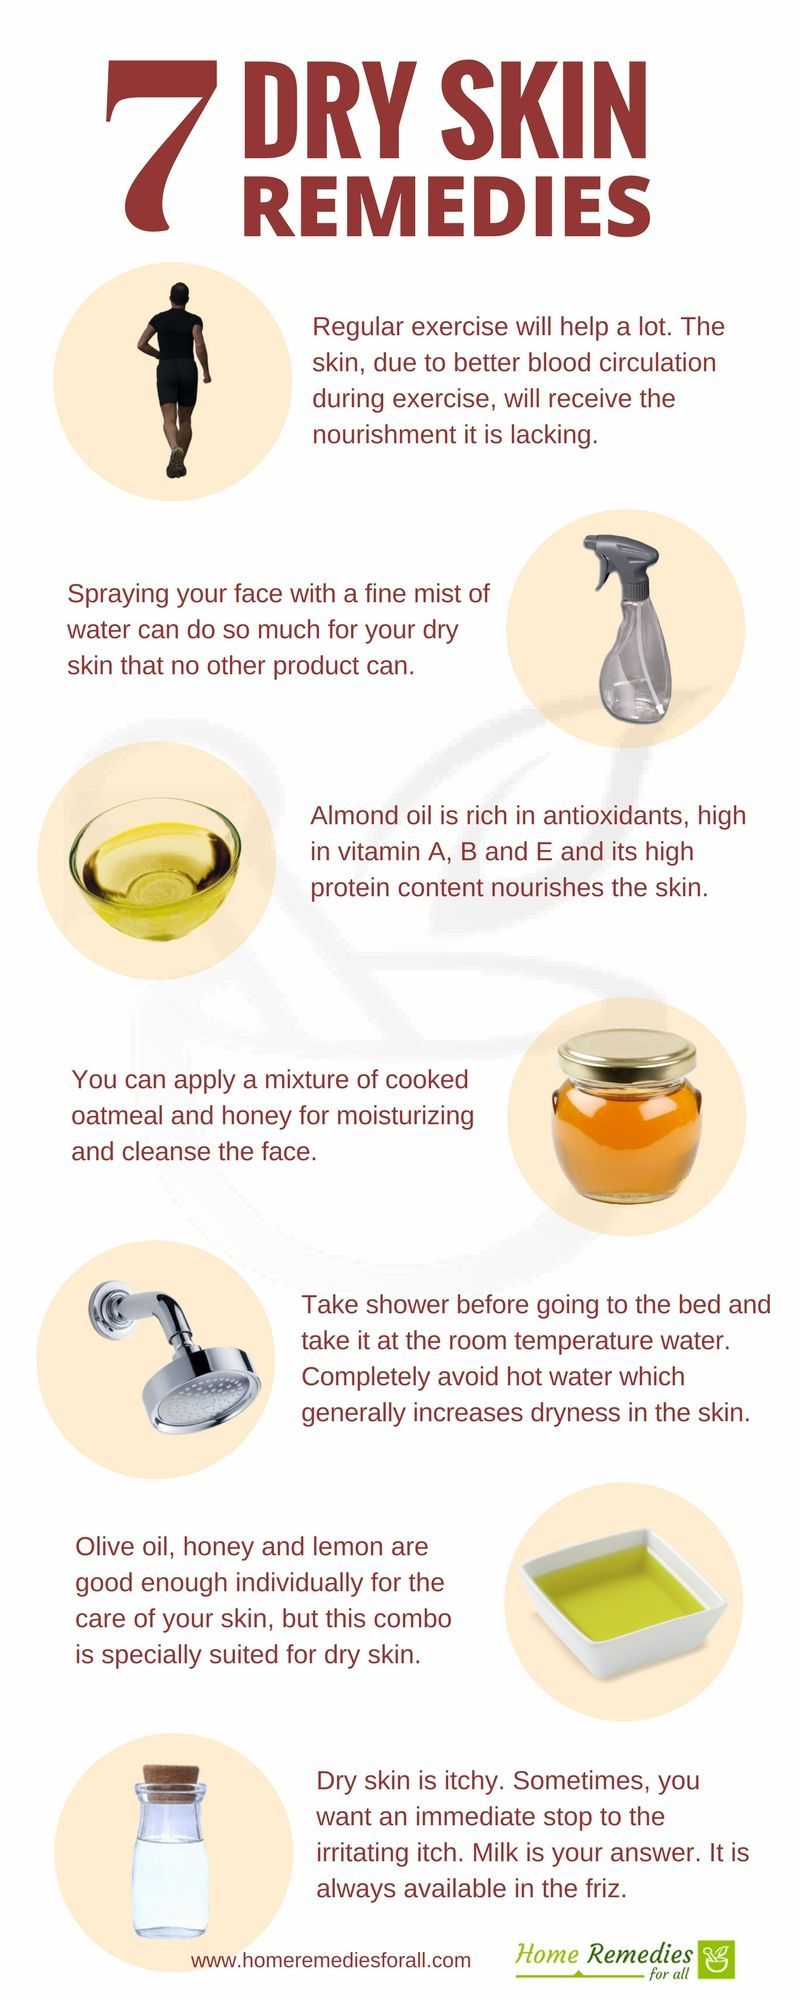 Use These Effective Home Remedies For Dry Skin To Make Your Skin Smooth And Glowing Dry Skin Care Skin Remedies Dry Skin Remedies